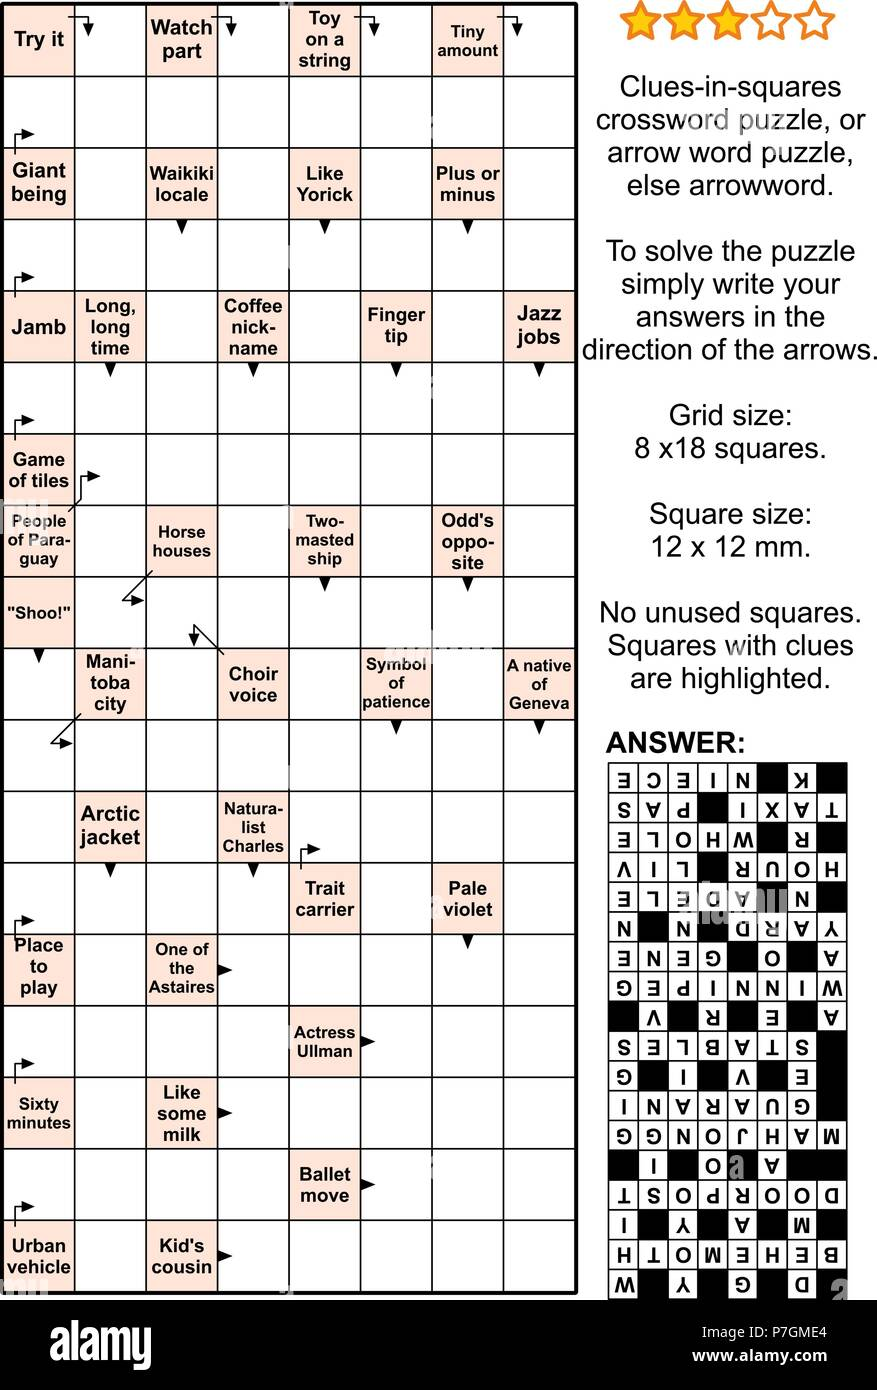 Crossword Puzzle Clues Clue Answers Answer High Resolution Stock Photography And Images Alamy